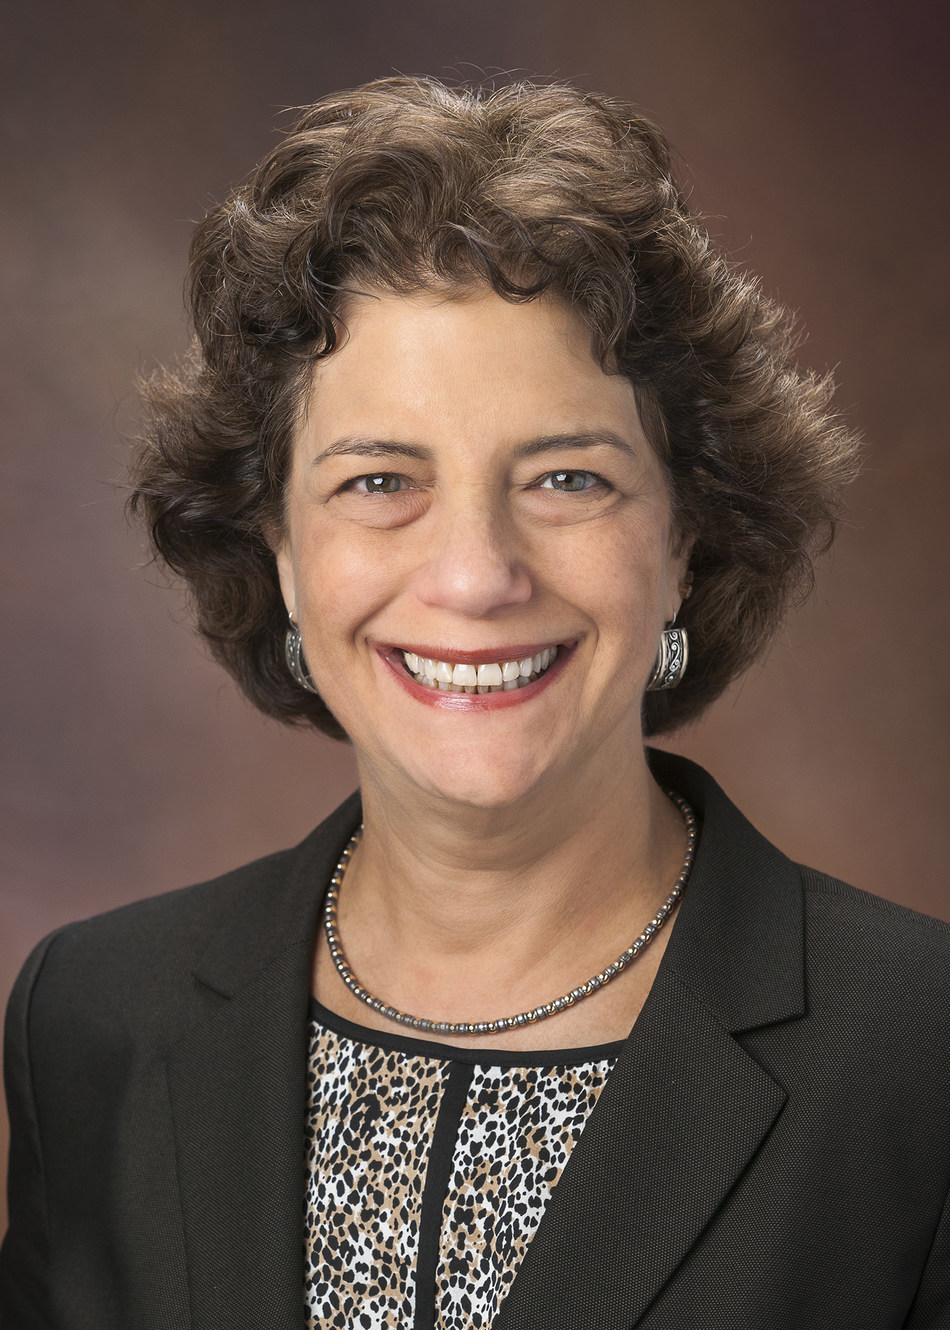 Susan E. Levy, M.D., M.P.H., a developmental and behavioral pediatrician in the Center for Autism Research and the Division of Developmental and Behavioral Pediatrics at The Children's Hospital of Philadelphia (CHOP)